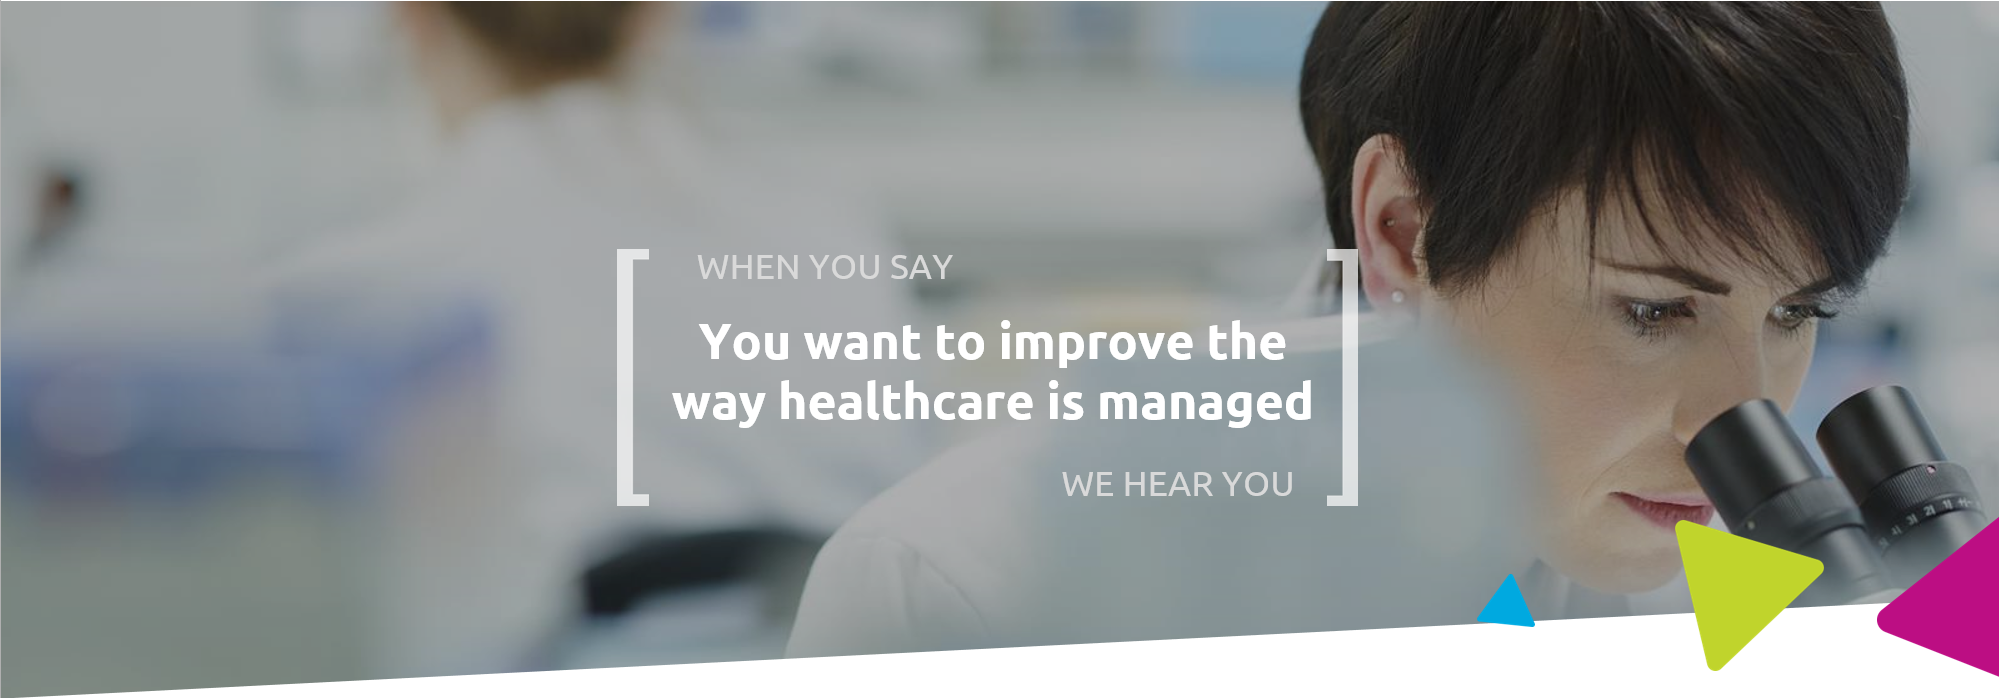 When you say you want to improve the way healthcare is manages, we hear you